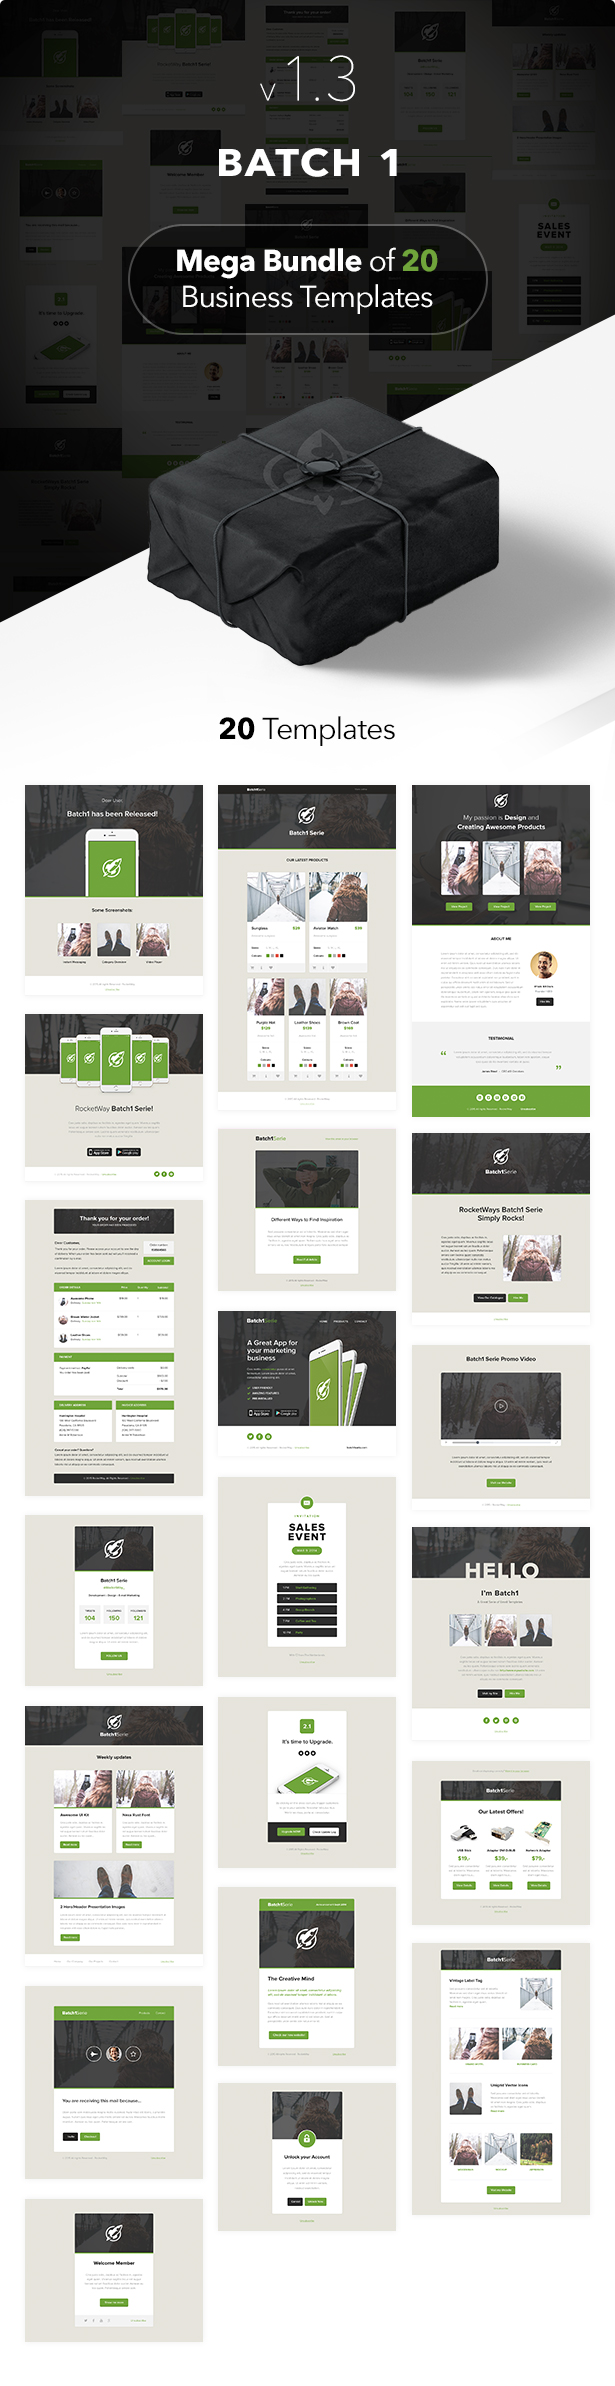 Batch1 - Complete Set of 20 Business Email Templates - 1